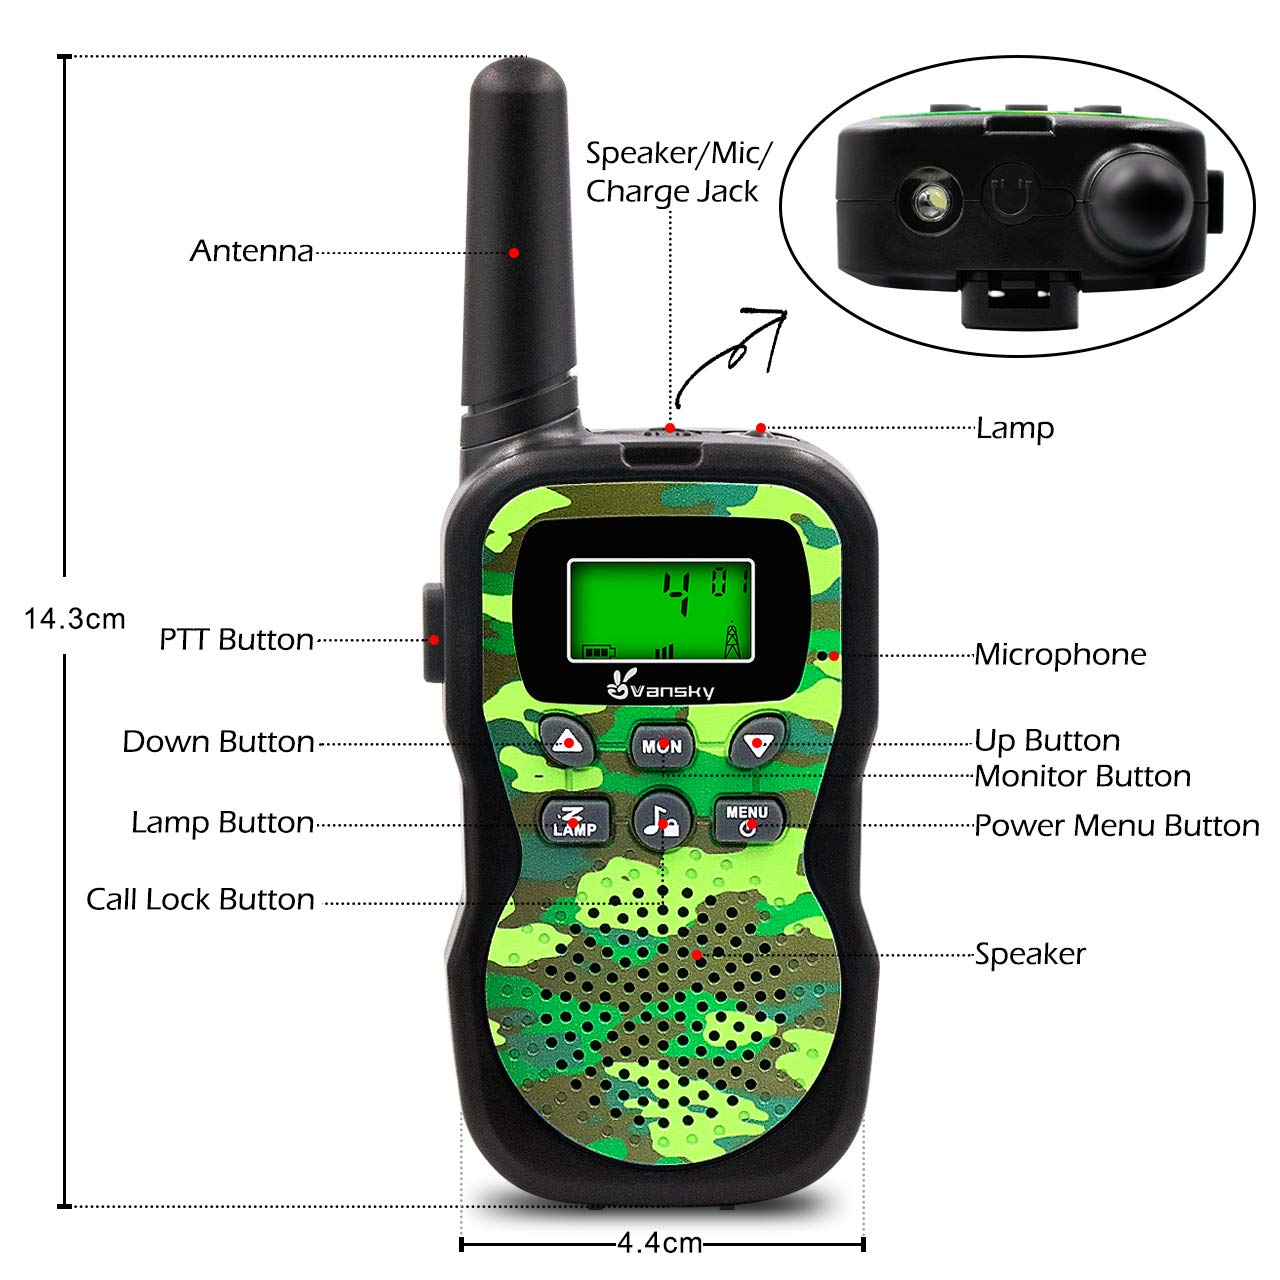 Vansky Walkie Talkies for Kids, Kids Toys 4 5 6 7 8 Age Boy Girl Long Range 22 Channel Built-in Flashlight 2 Way Radio Best Gifts Games, Outdoor Adventure, Camping, Hiking (Camo Green) by Vansky (Image #4)